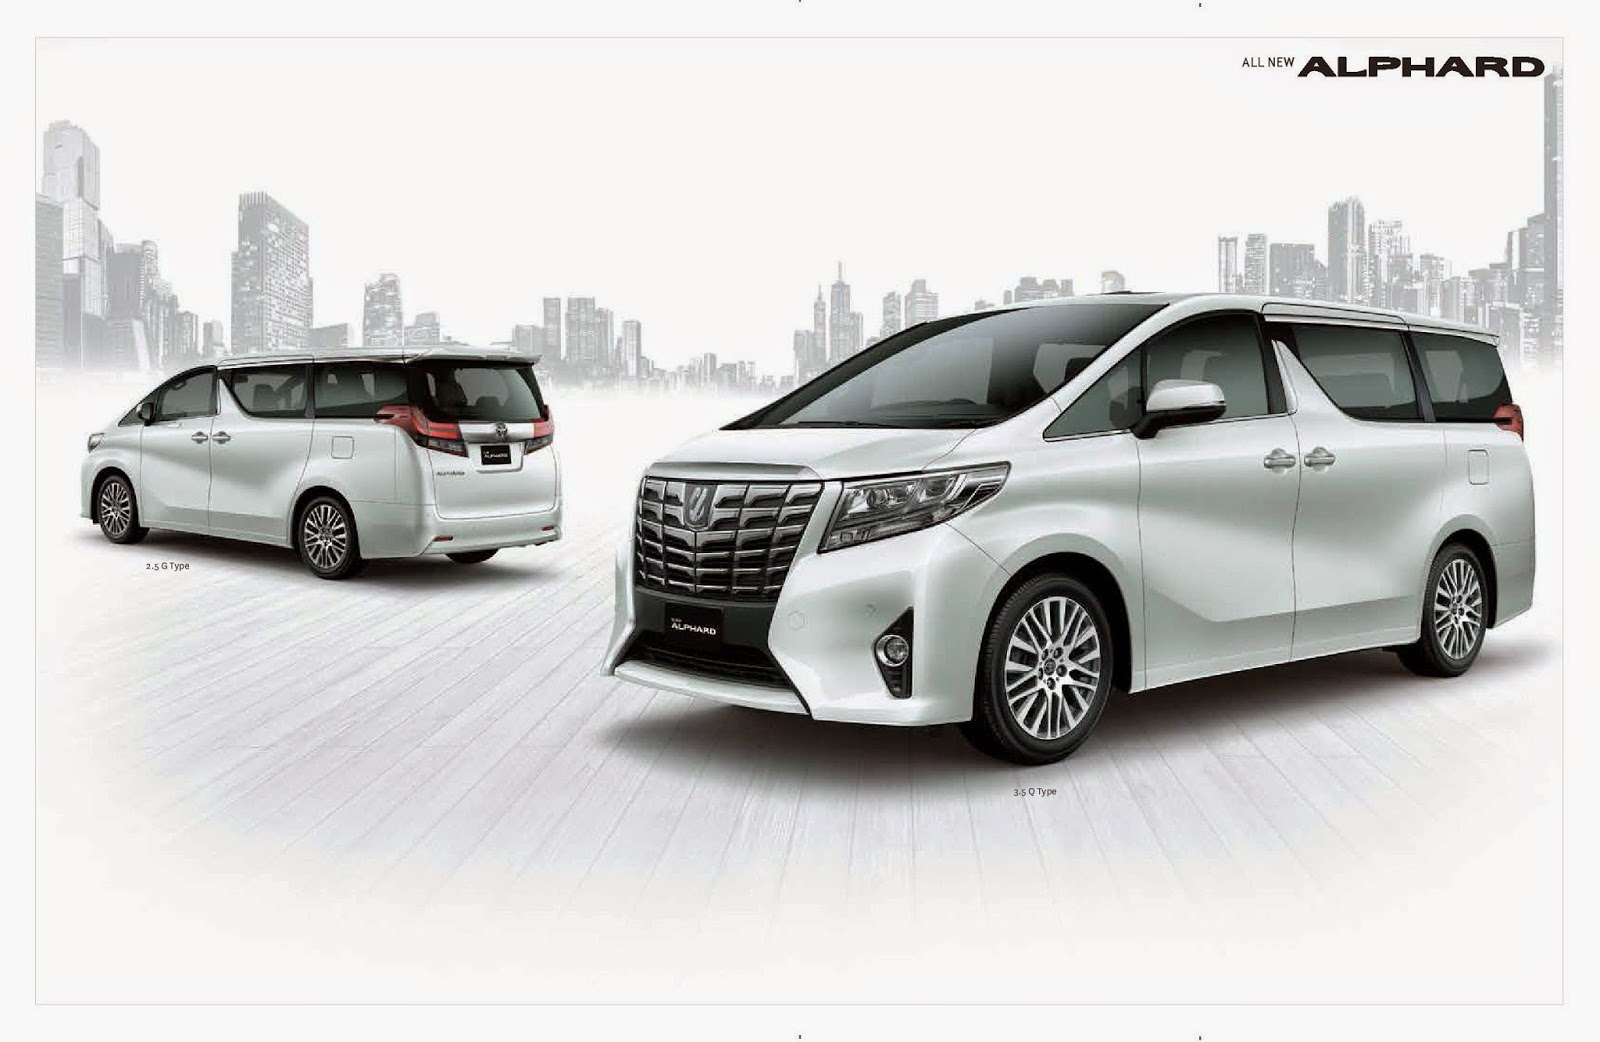 All New Alphard Vs Vellfire Toyota Yaris Trd Sportivo 2017 Indonesia Nissan Elgrand Comparison Autos Post